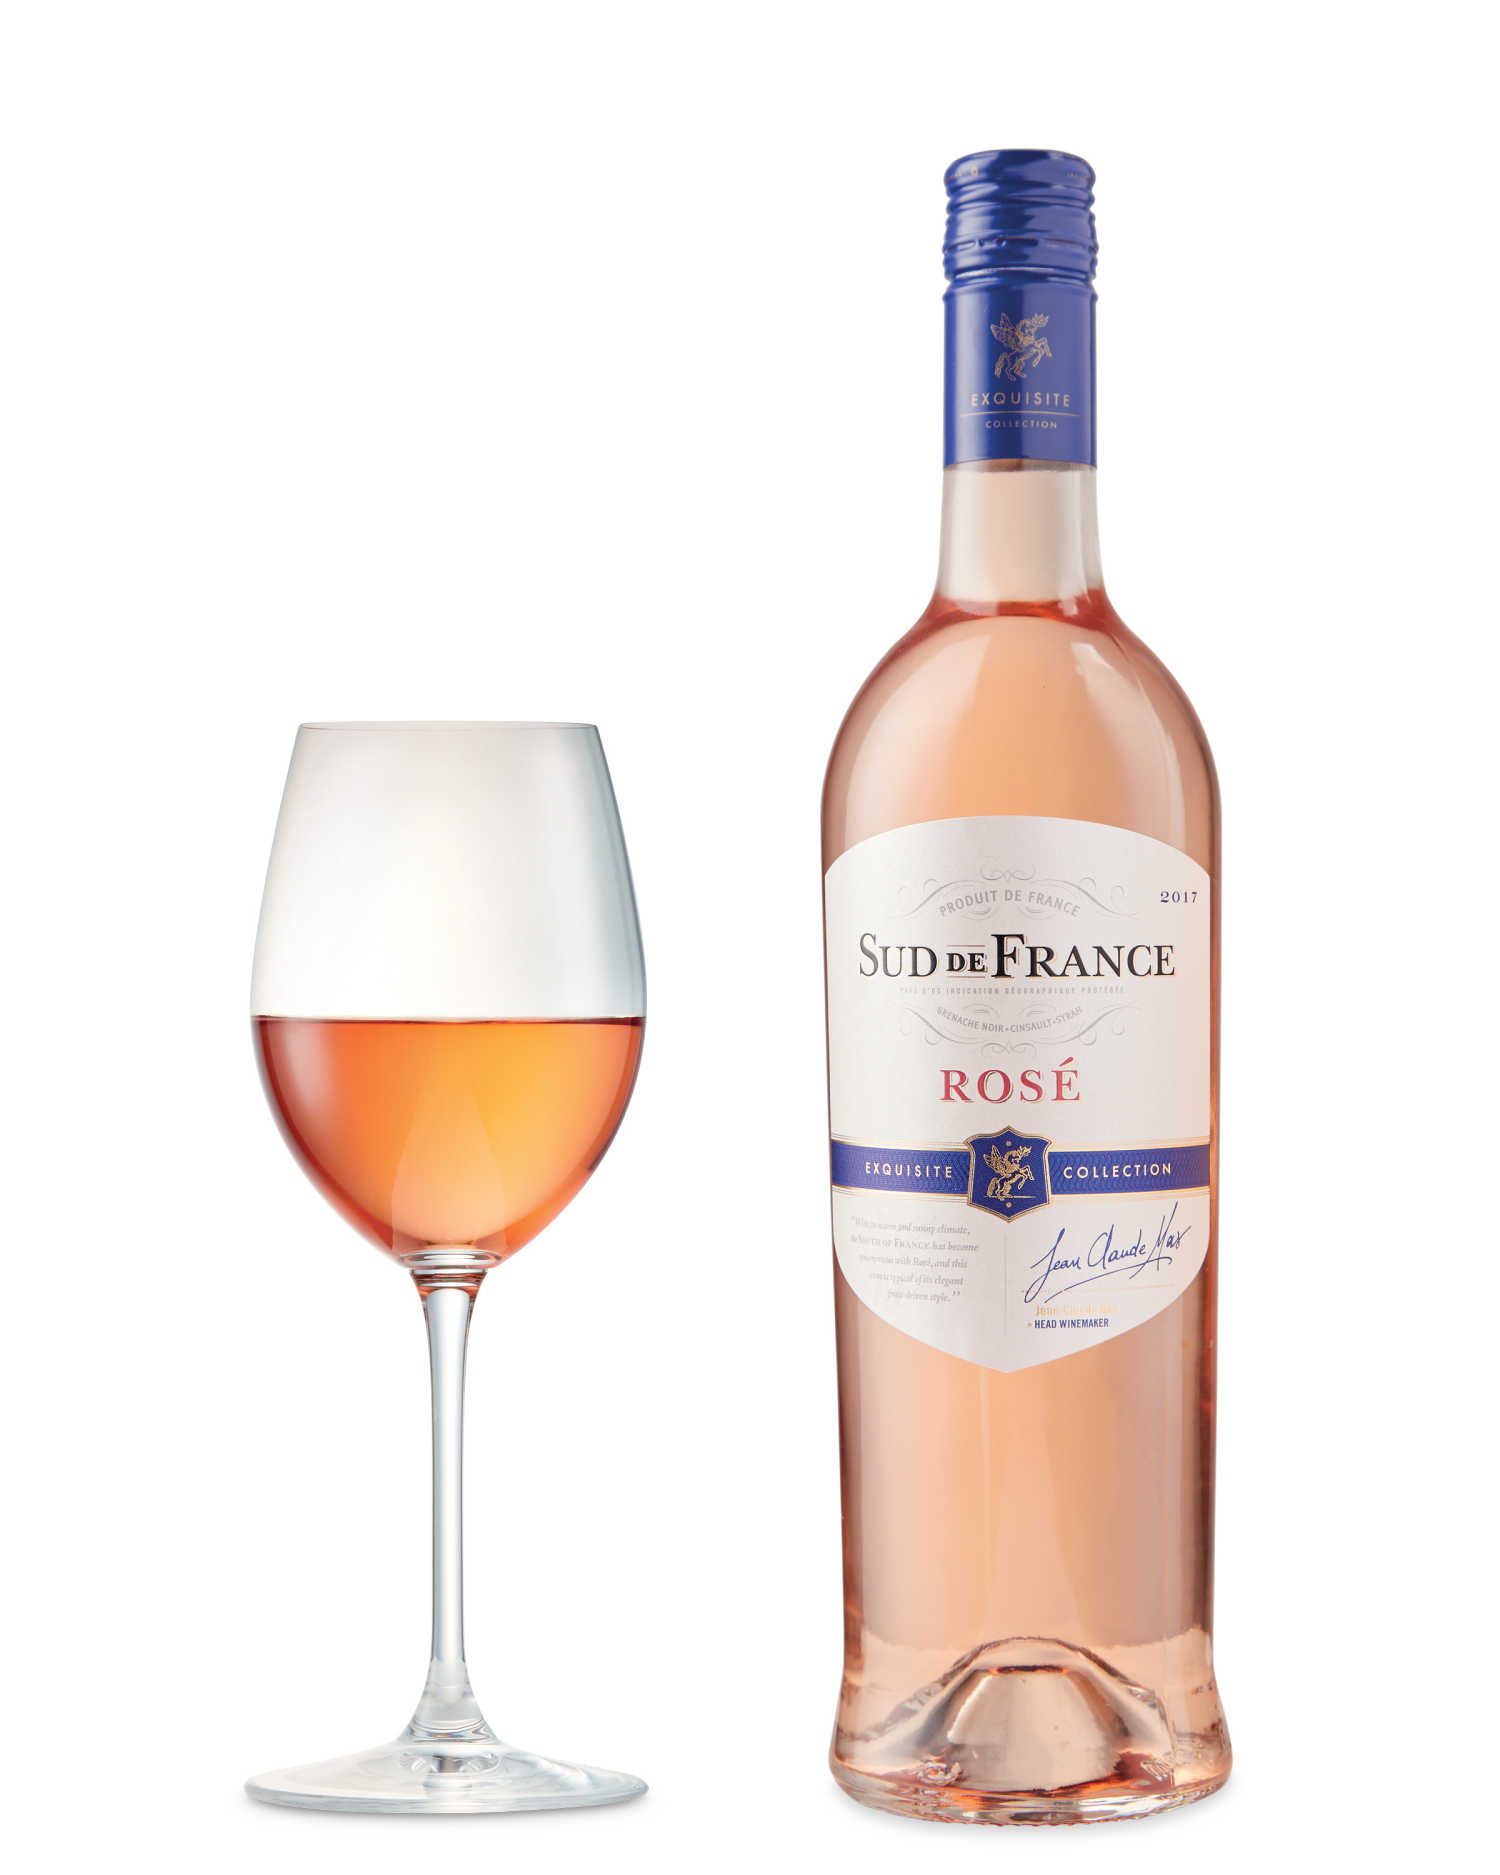 Exquisite Collection Sud de France Rosé